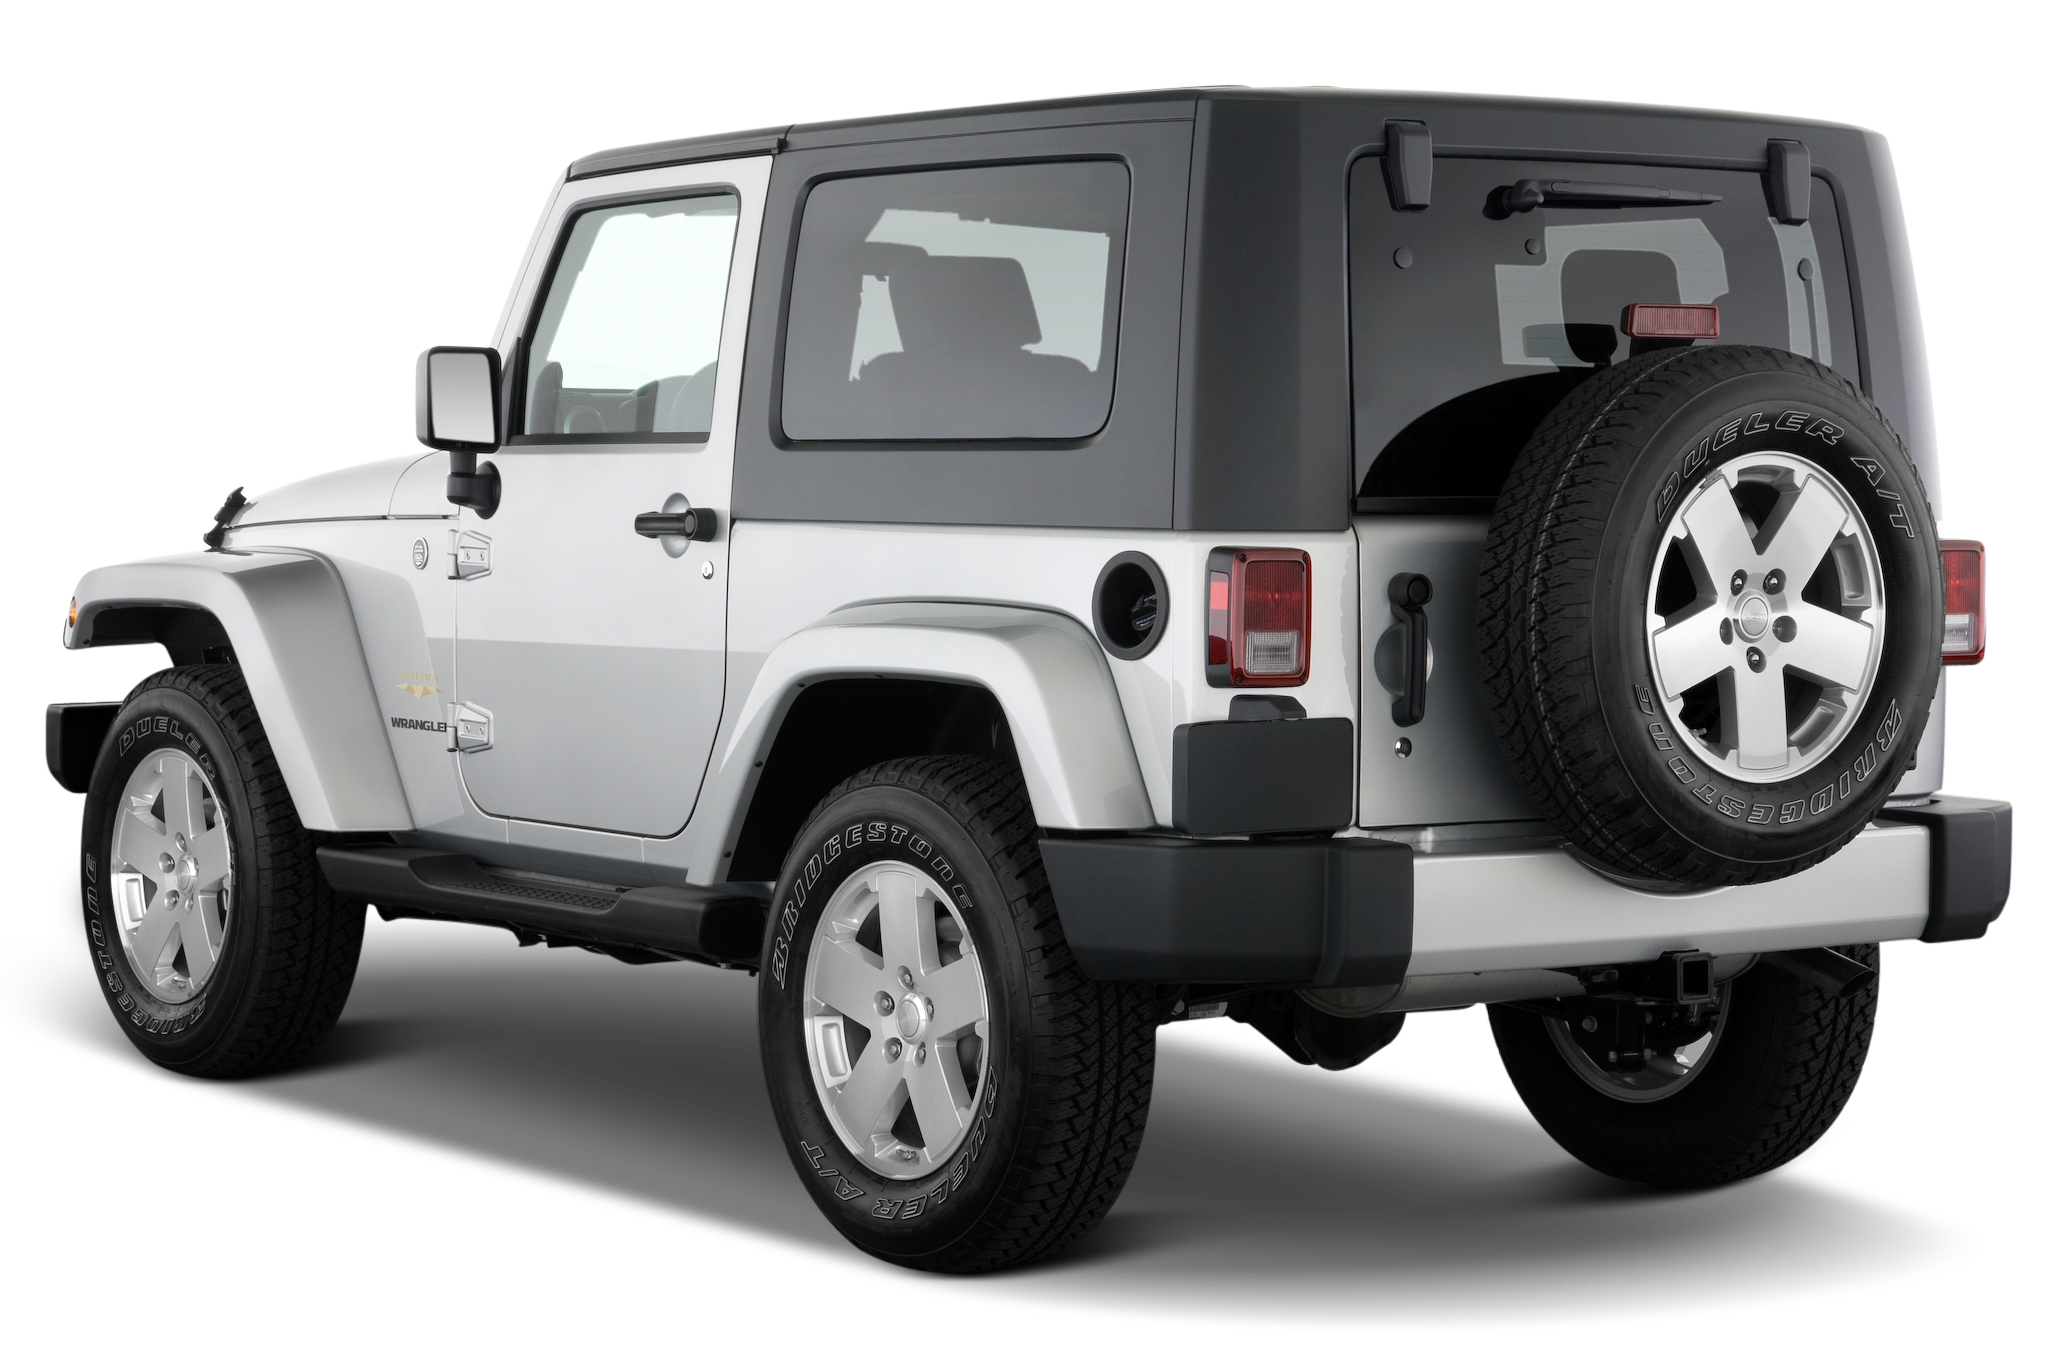 Jeep Png Image Jeep Images Jeep Image